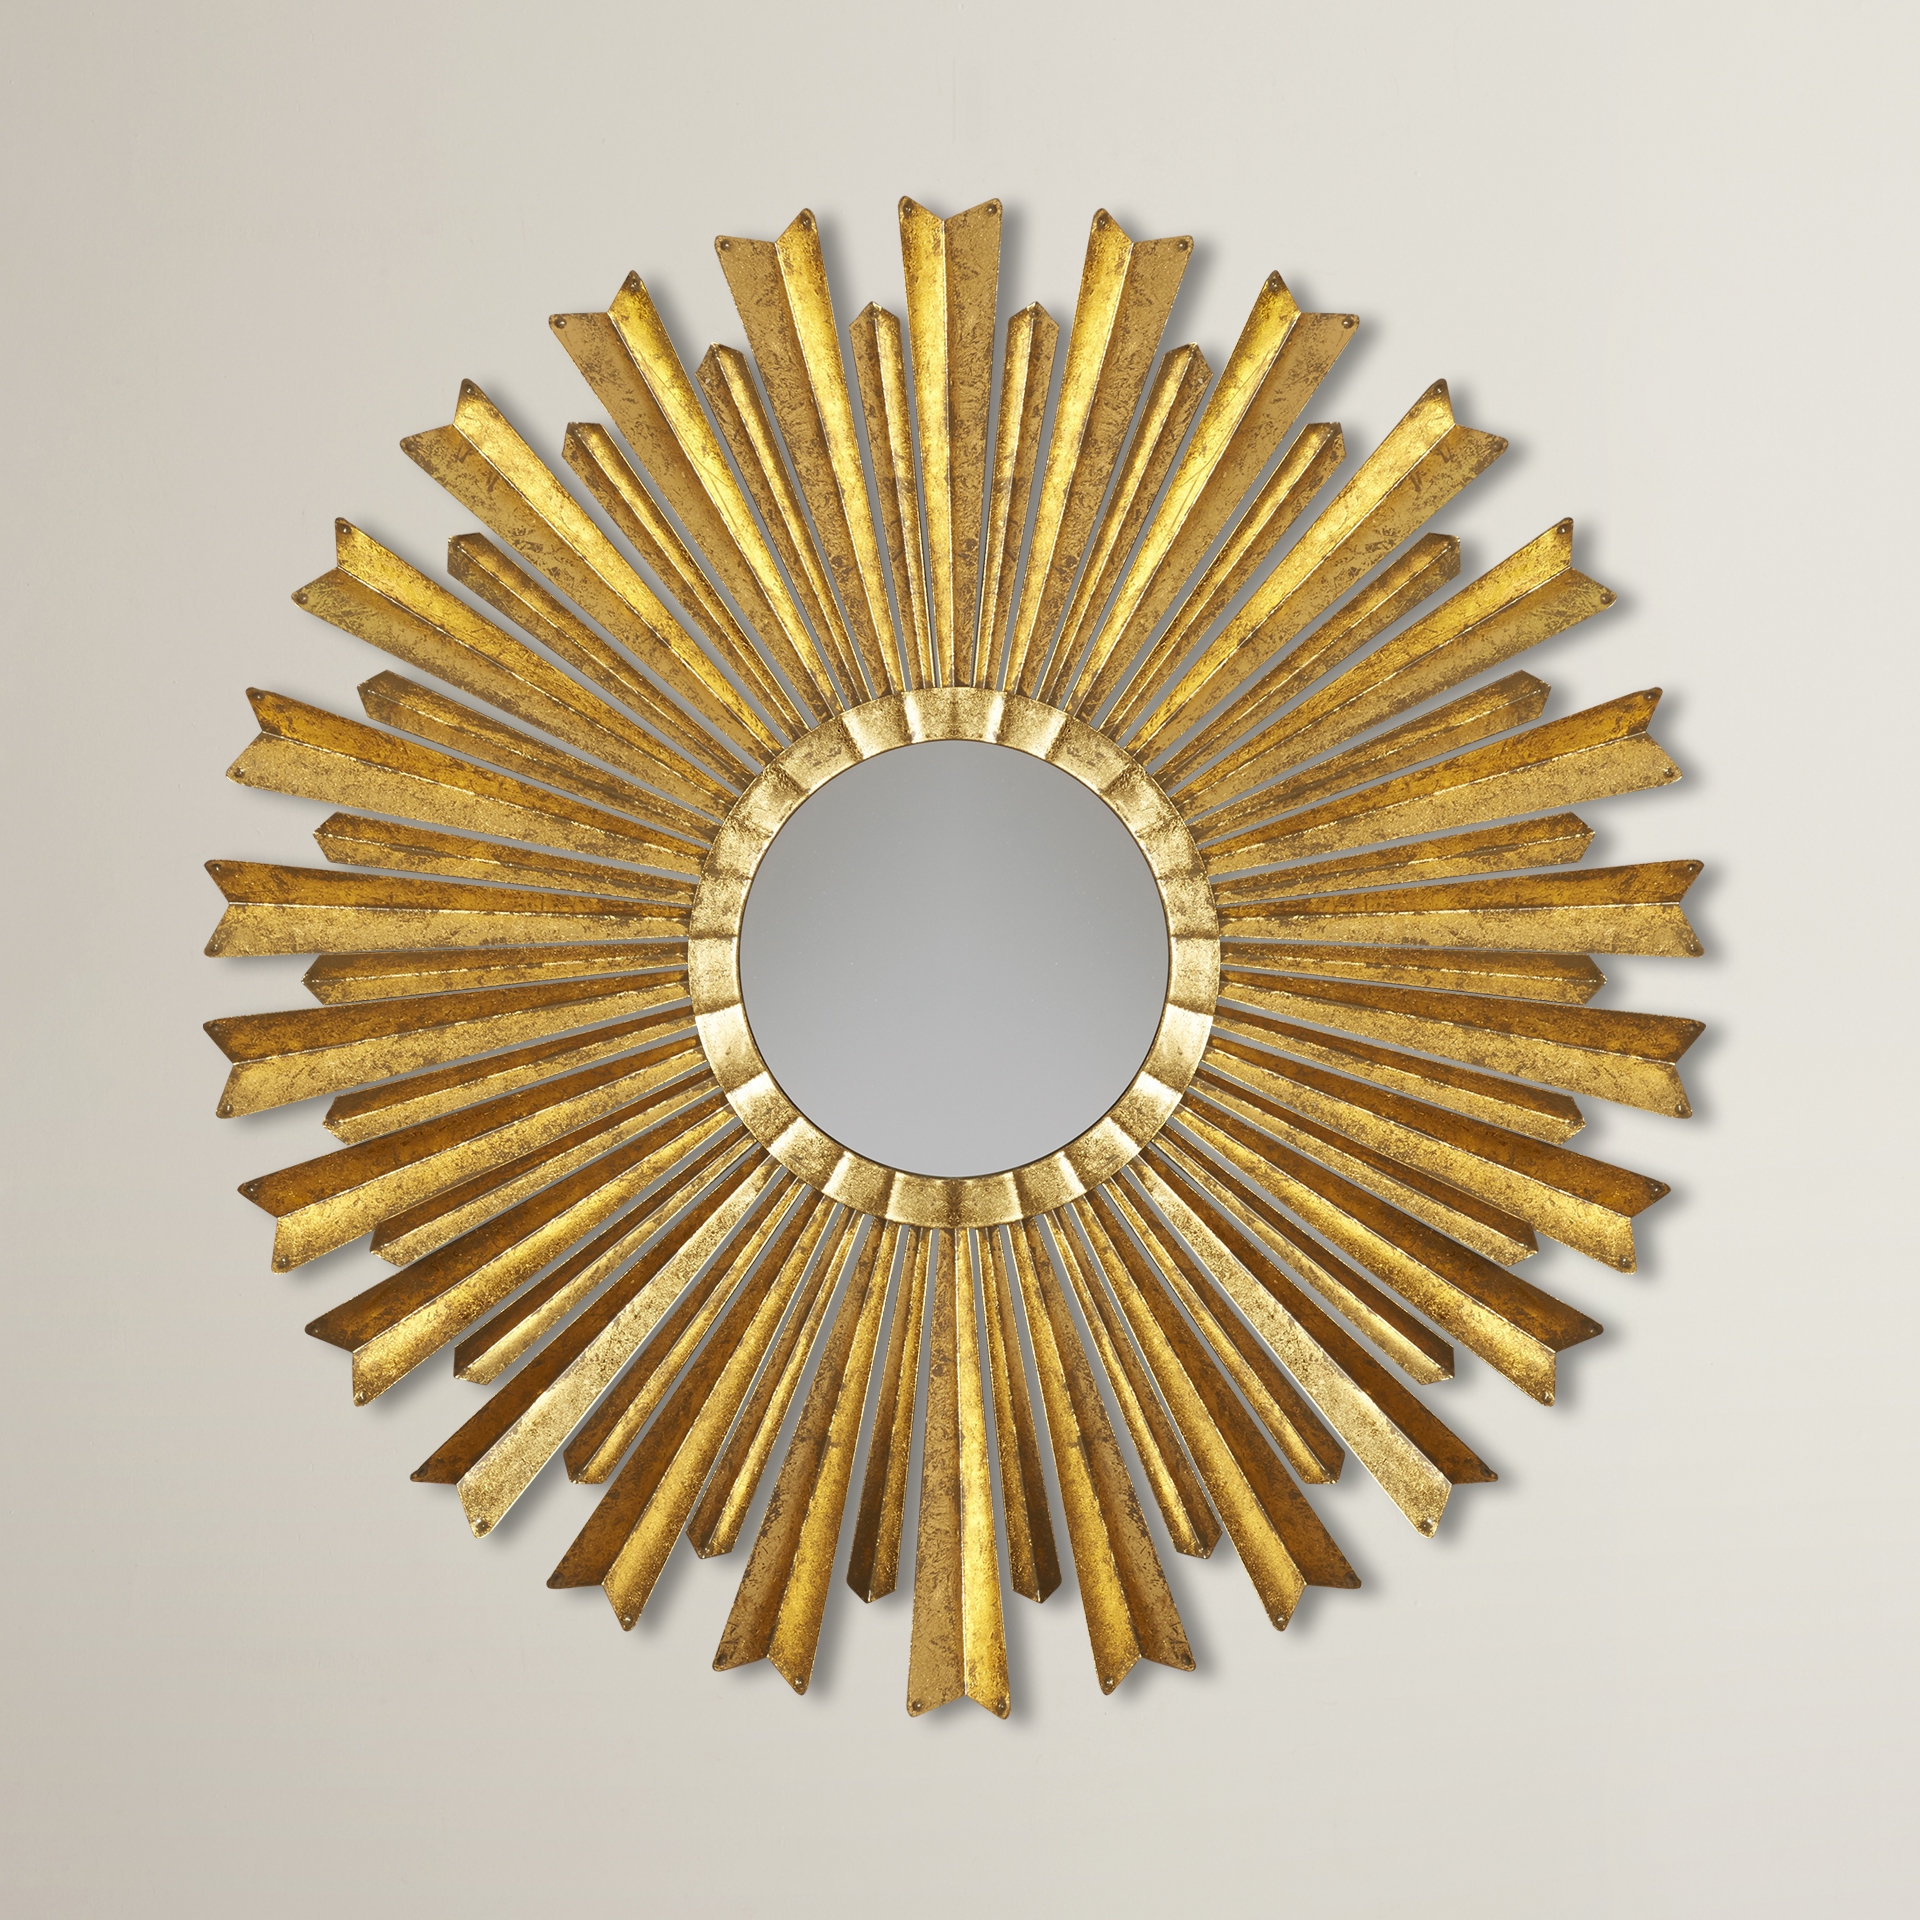 Birksgate Sunburst Accent Mirror Inside Jarrod Sunburst Accent Mirrors (View 4 of 30)